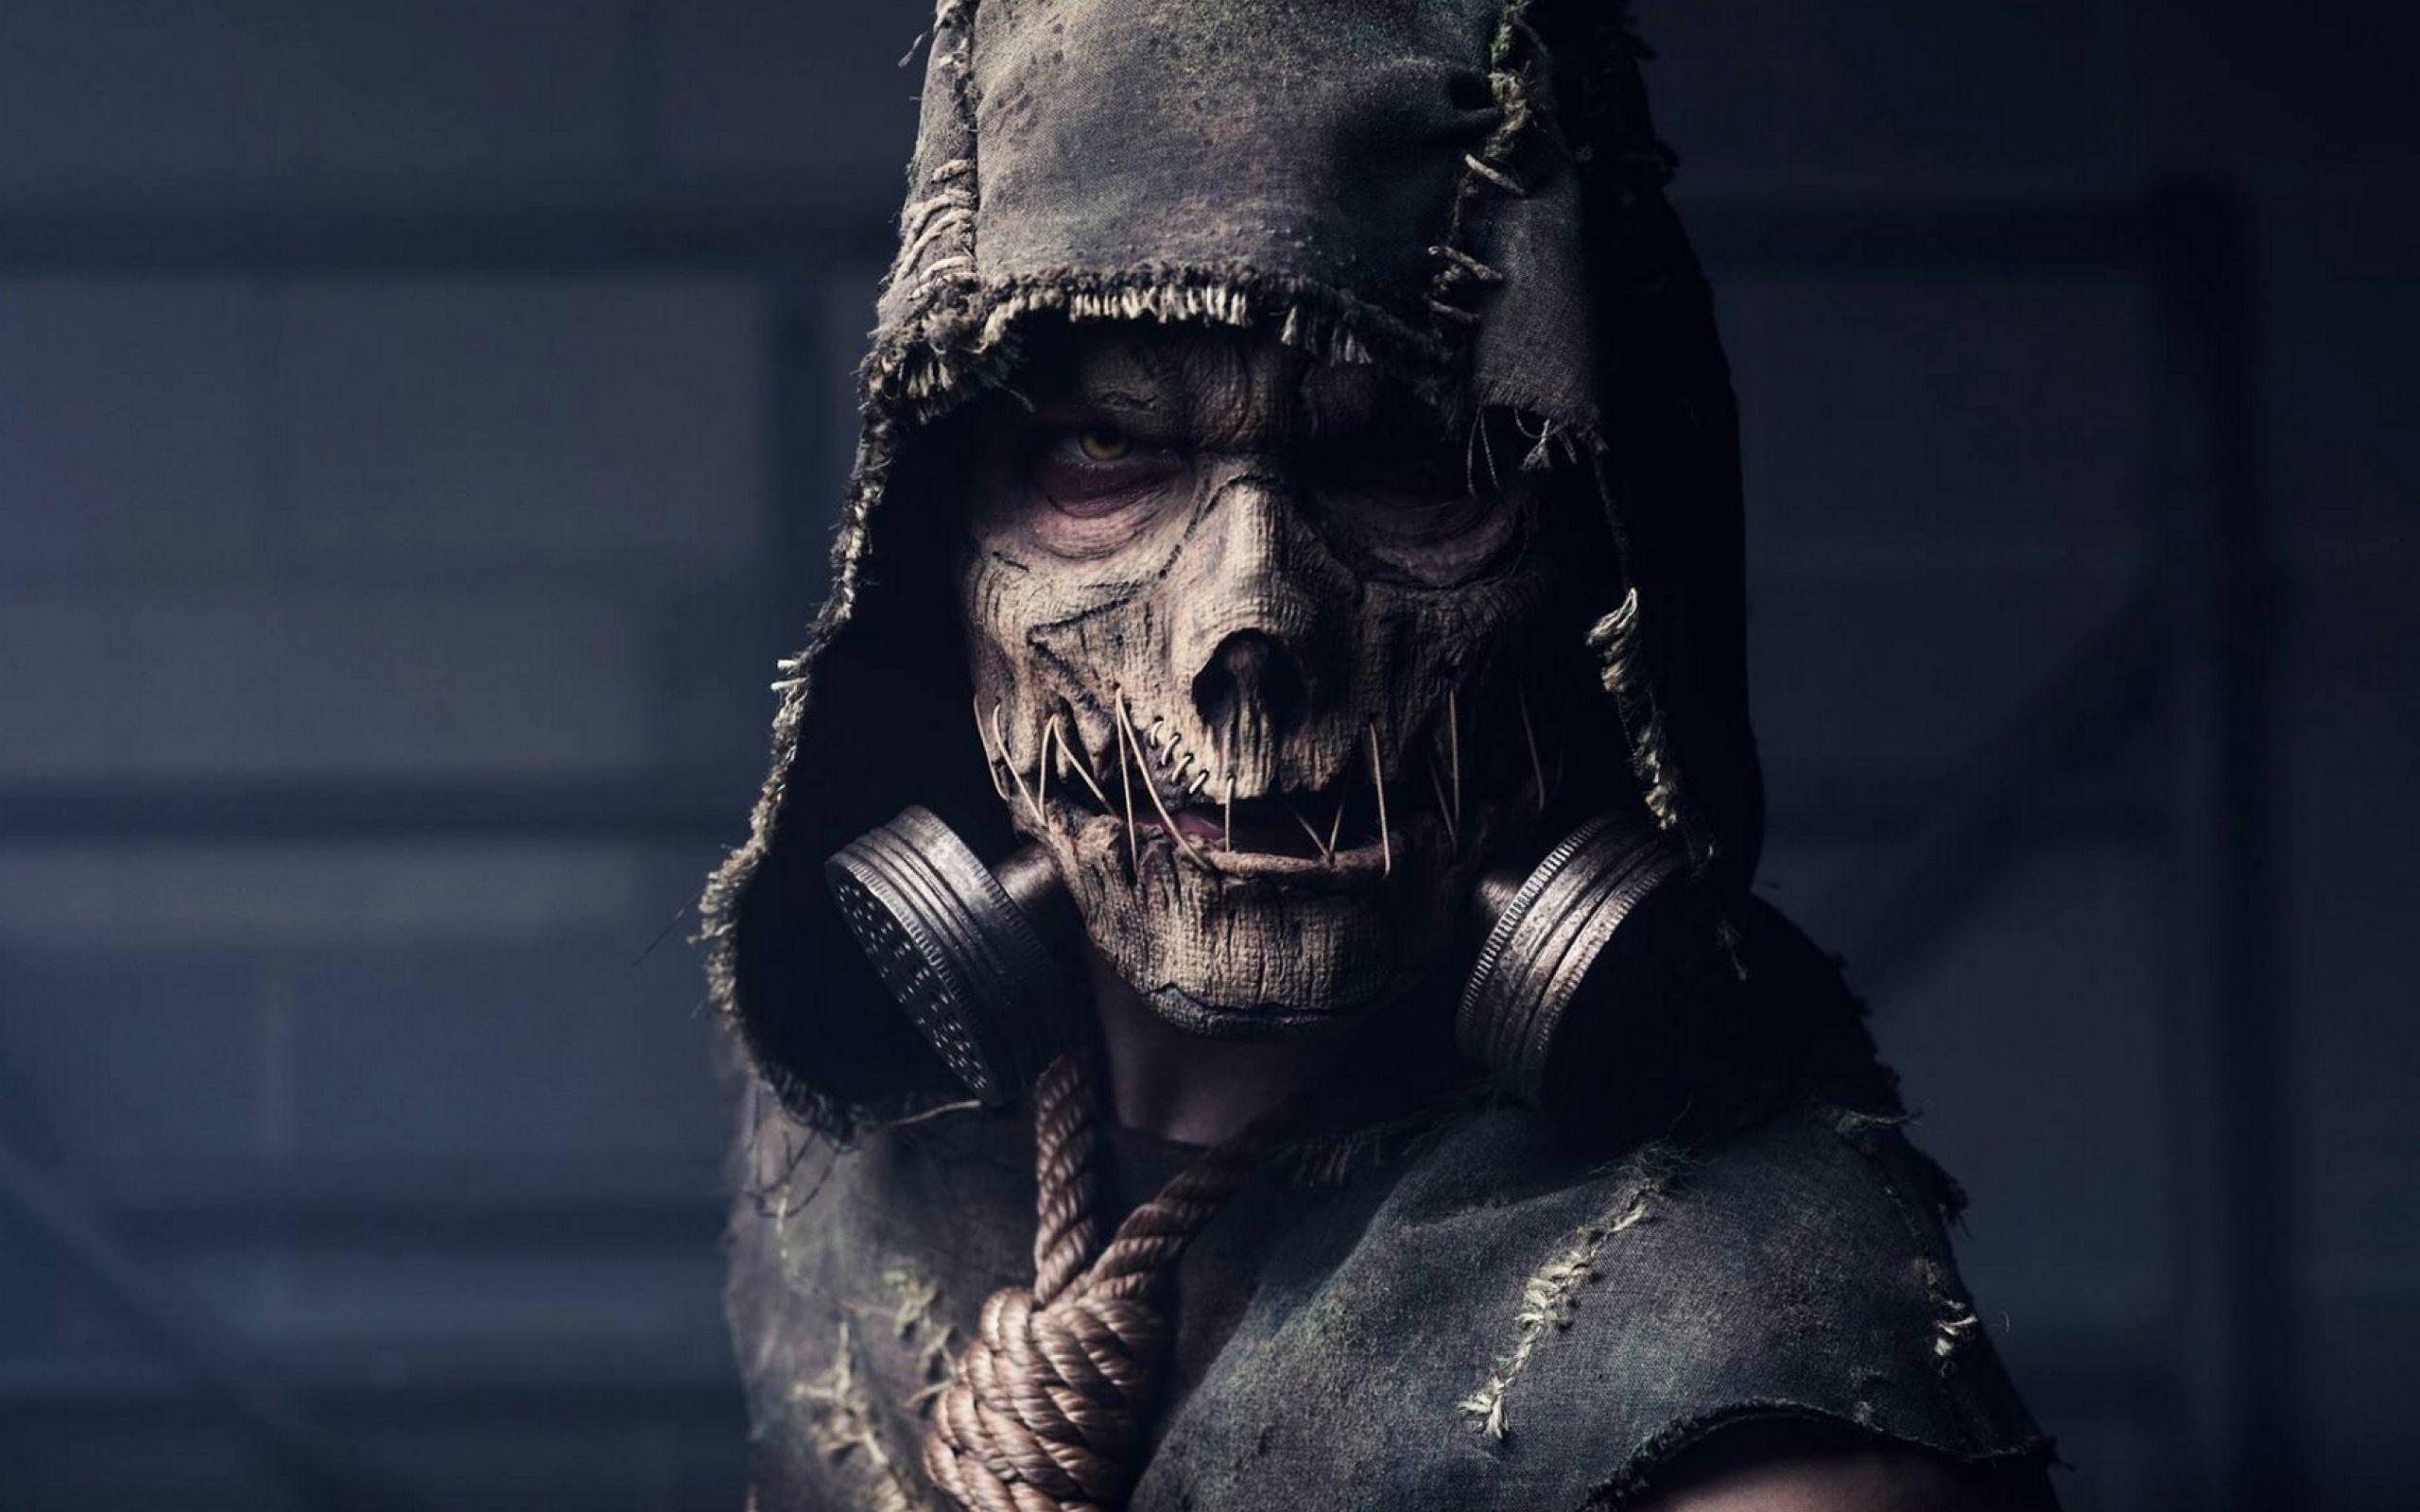 Batman Arkham Knight Scarecrow Wallpaper 2560x1600